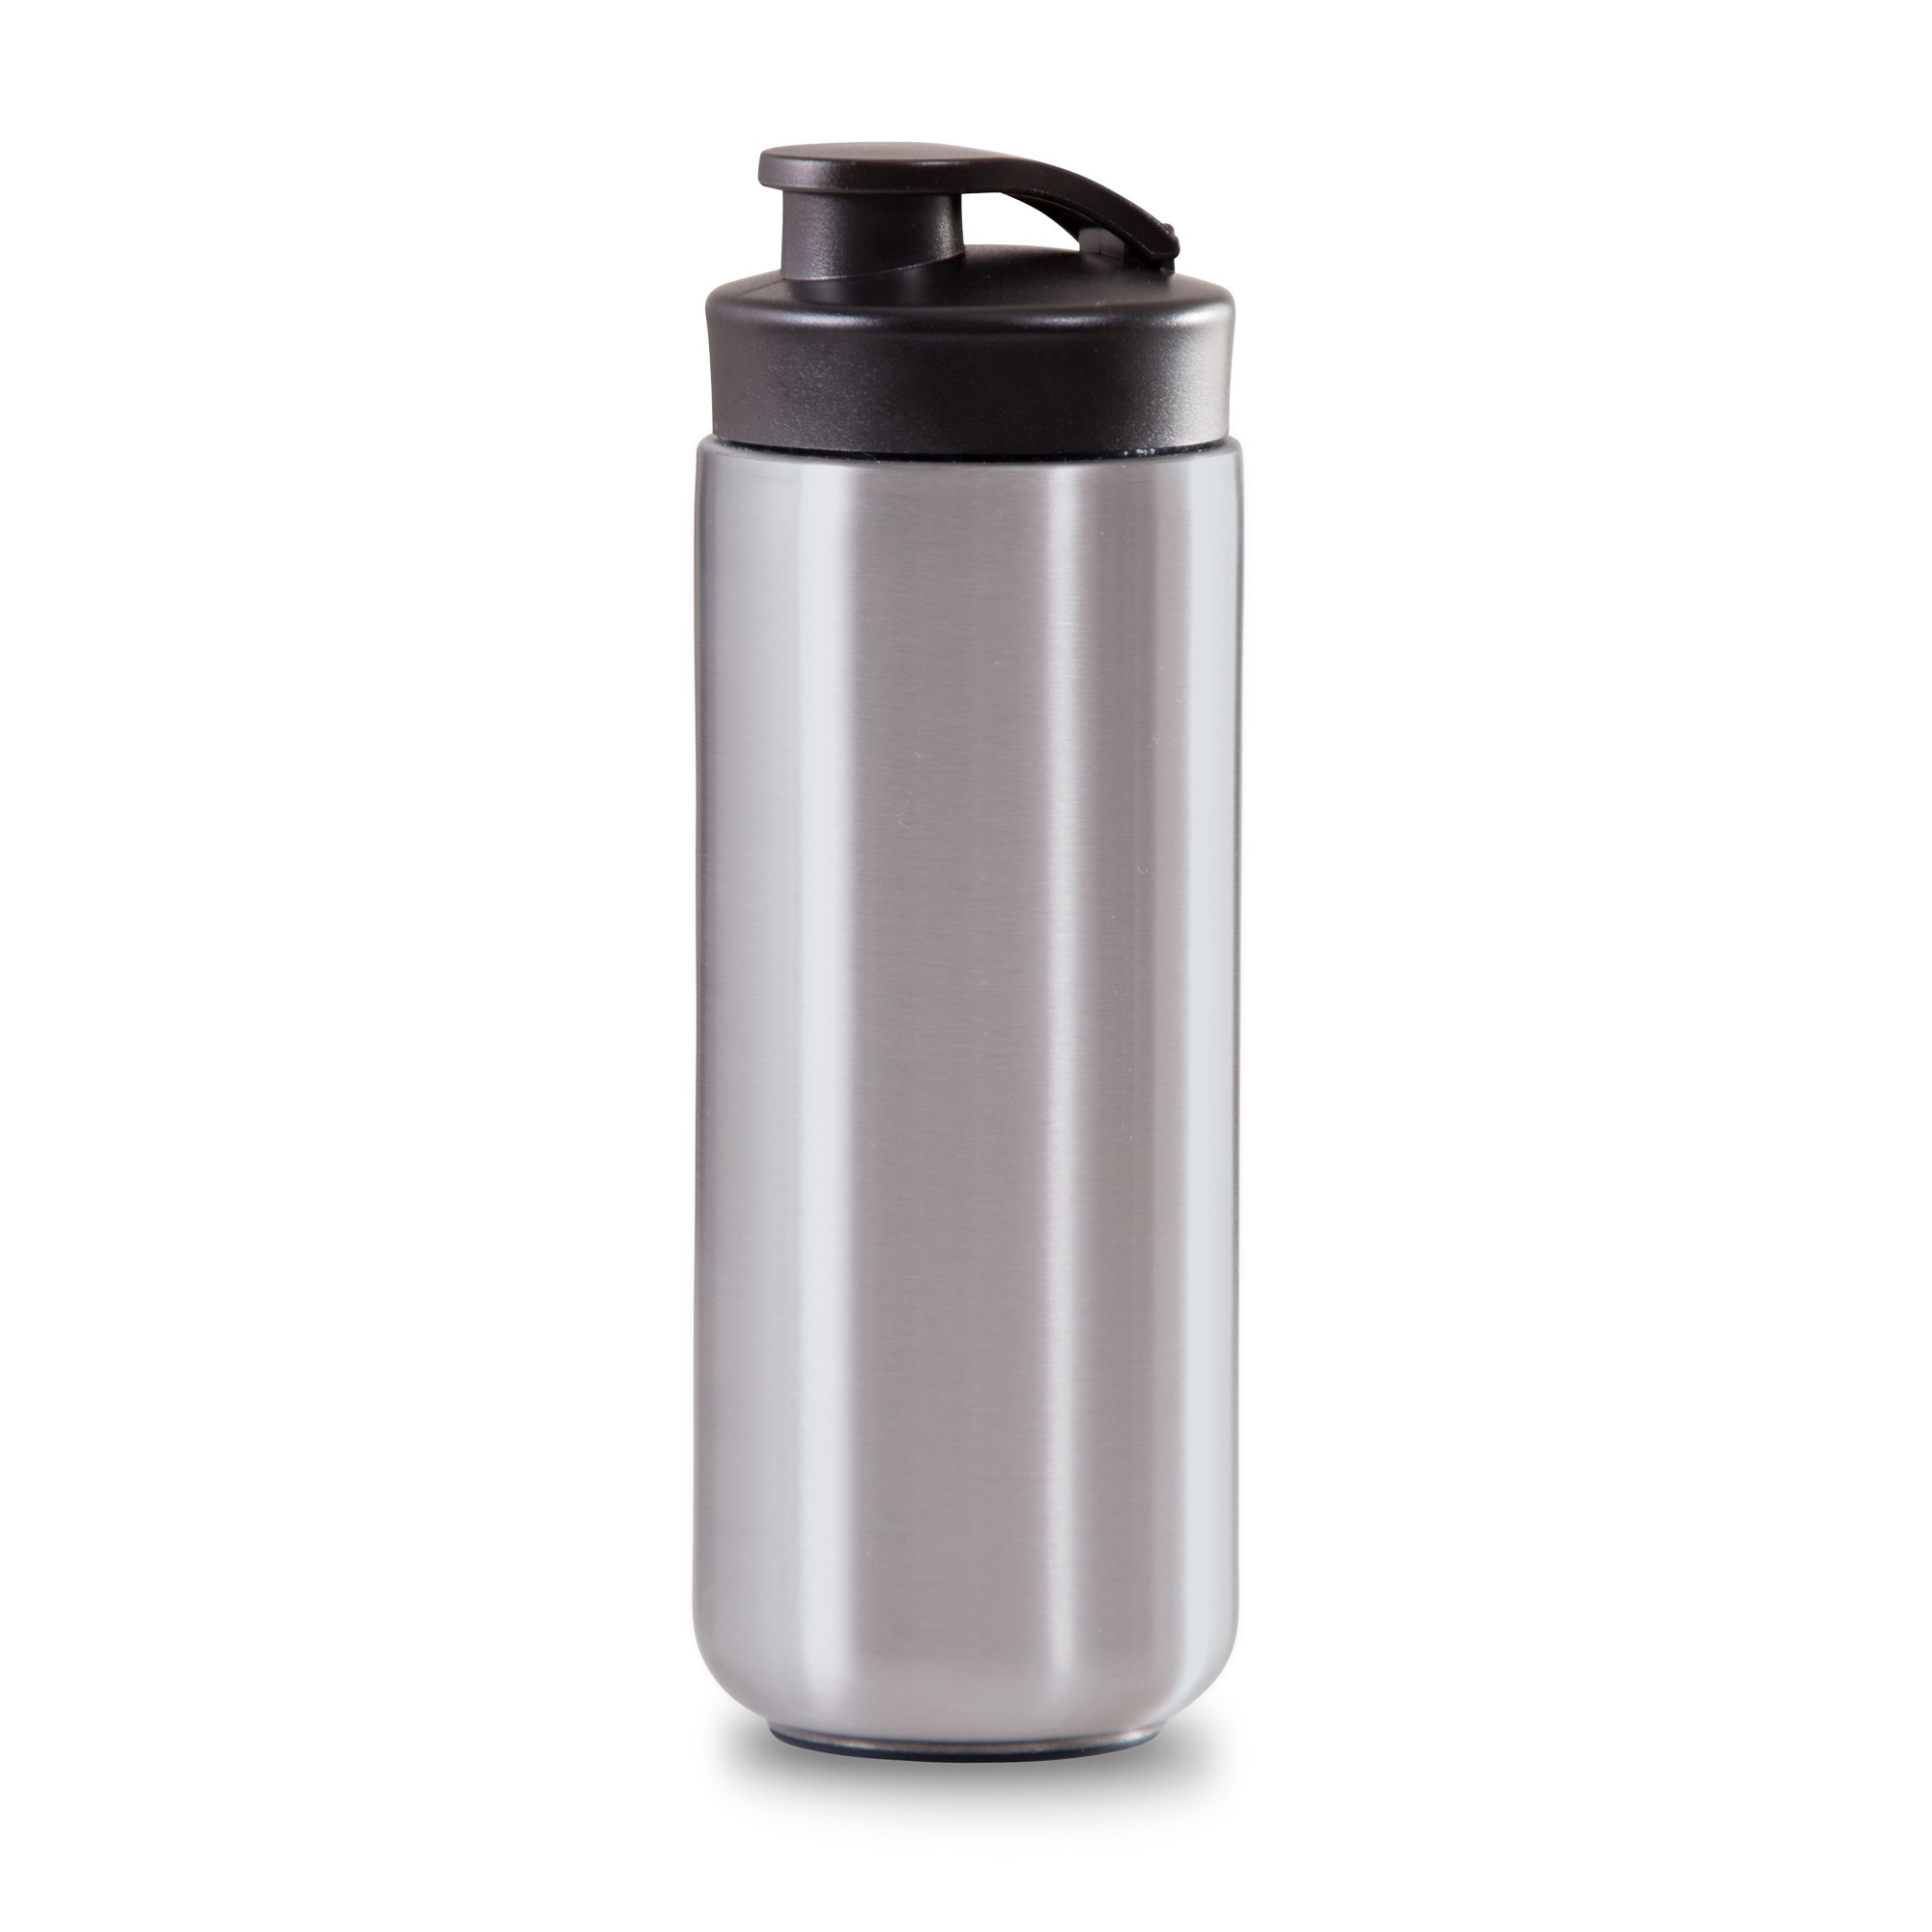 Dash Arctic Chill Blender: The Compact Personal Blender with Insulated Stainless-Steel Tumbler 16 oz + Travel Lid for Coffee Drinks, Frozen Cocktails, Smoothies by Dash (Image #4)